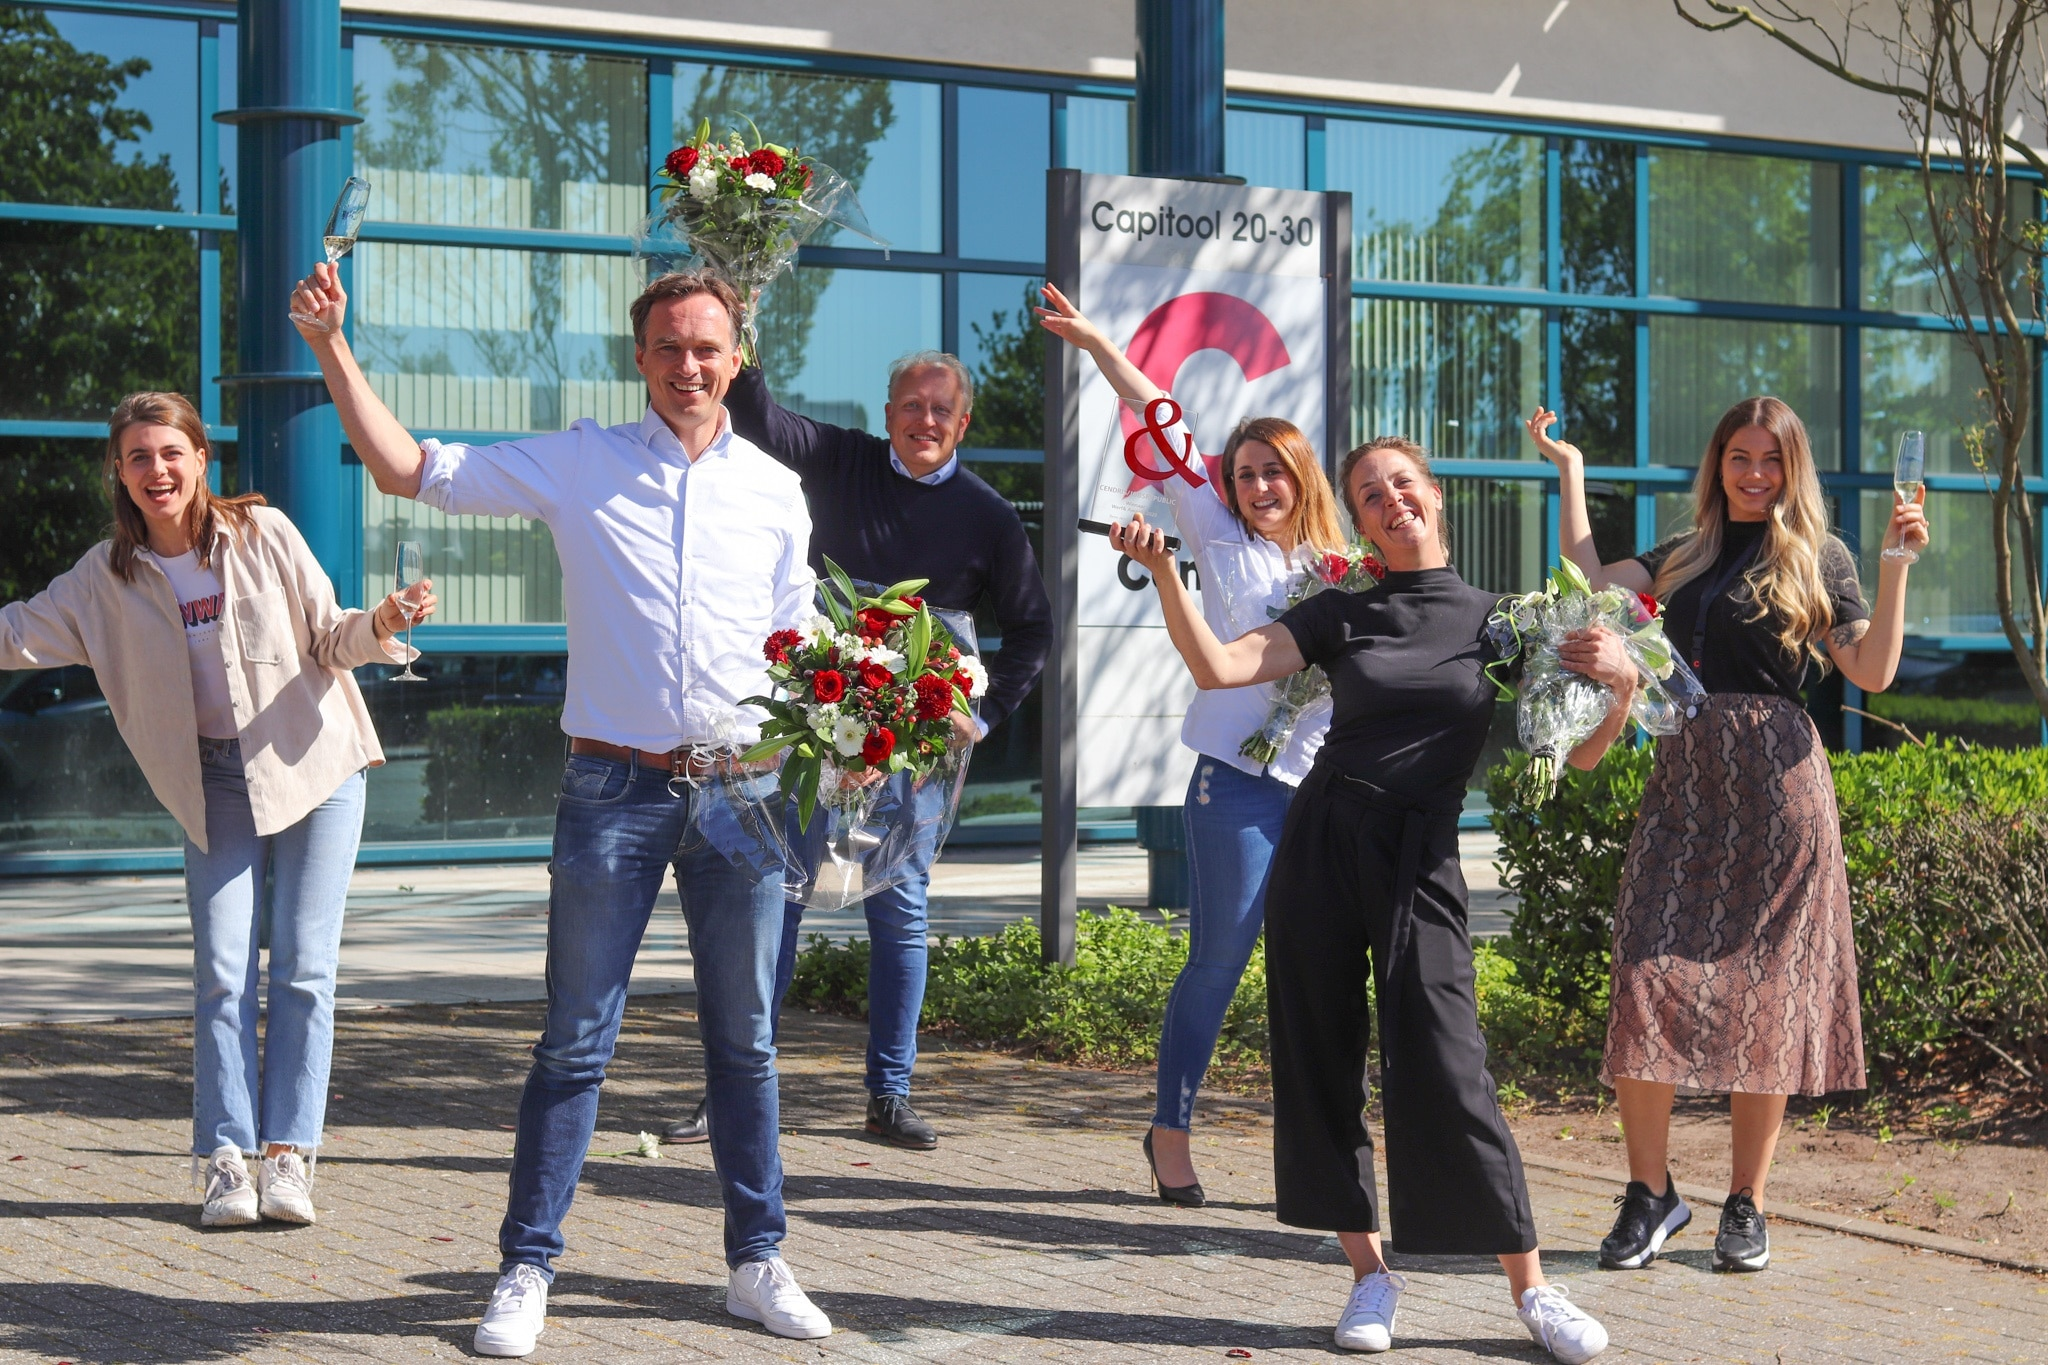 Jobsrepublic wint Werf& Award voor beste recruitment case